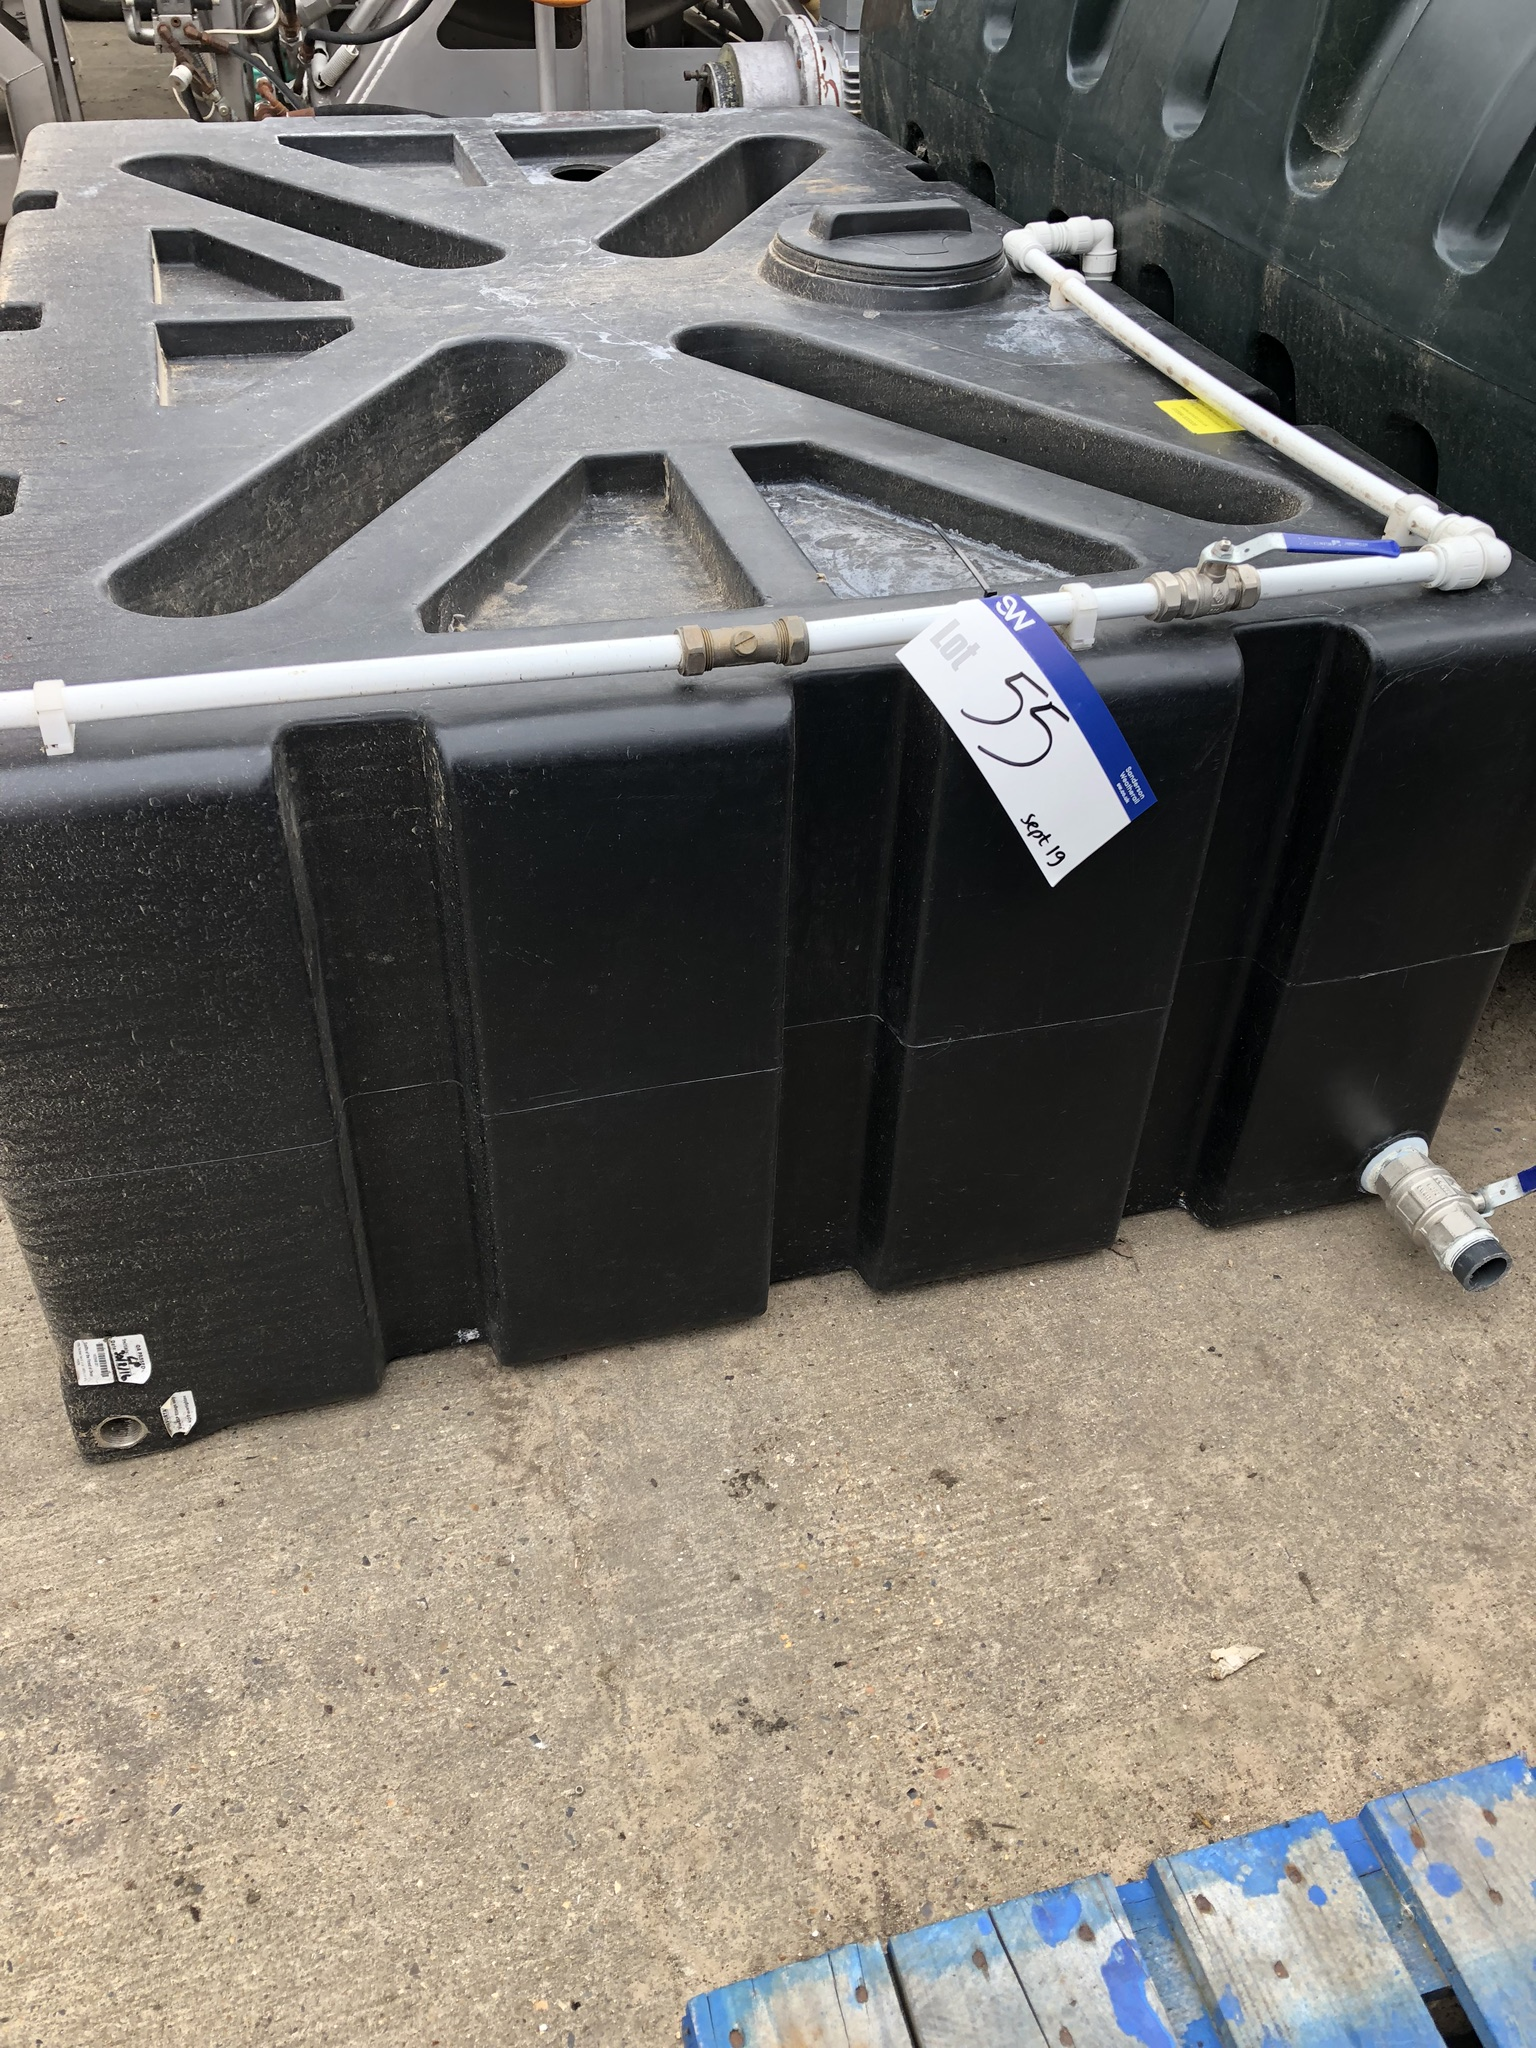 1250L Water Storage Plastic Tank, approx. 1.9m x 1.2m x 0.6m, lift out charge - £20